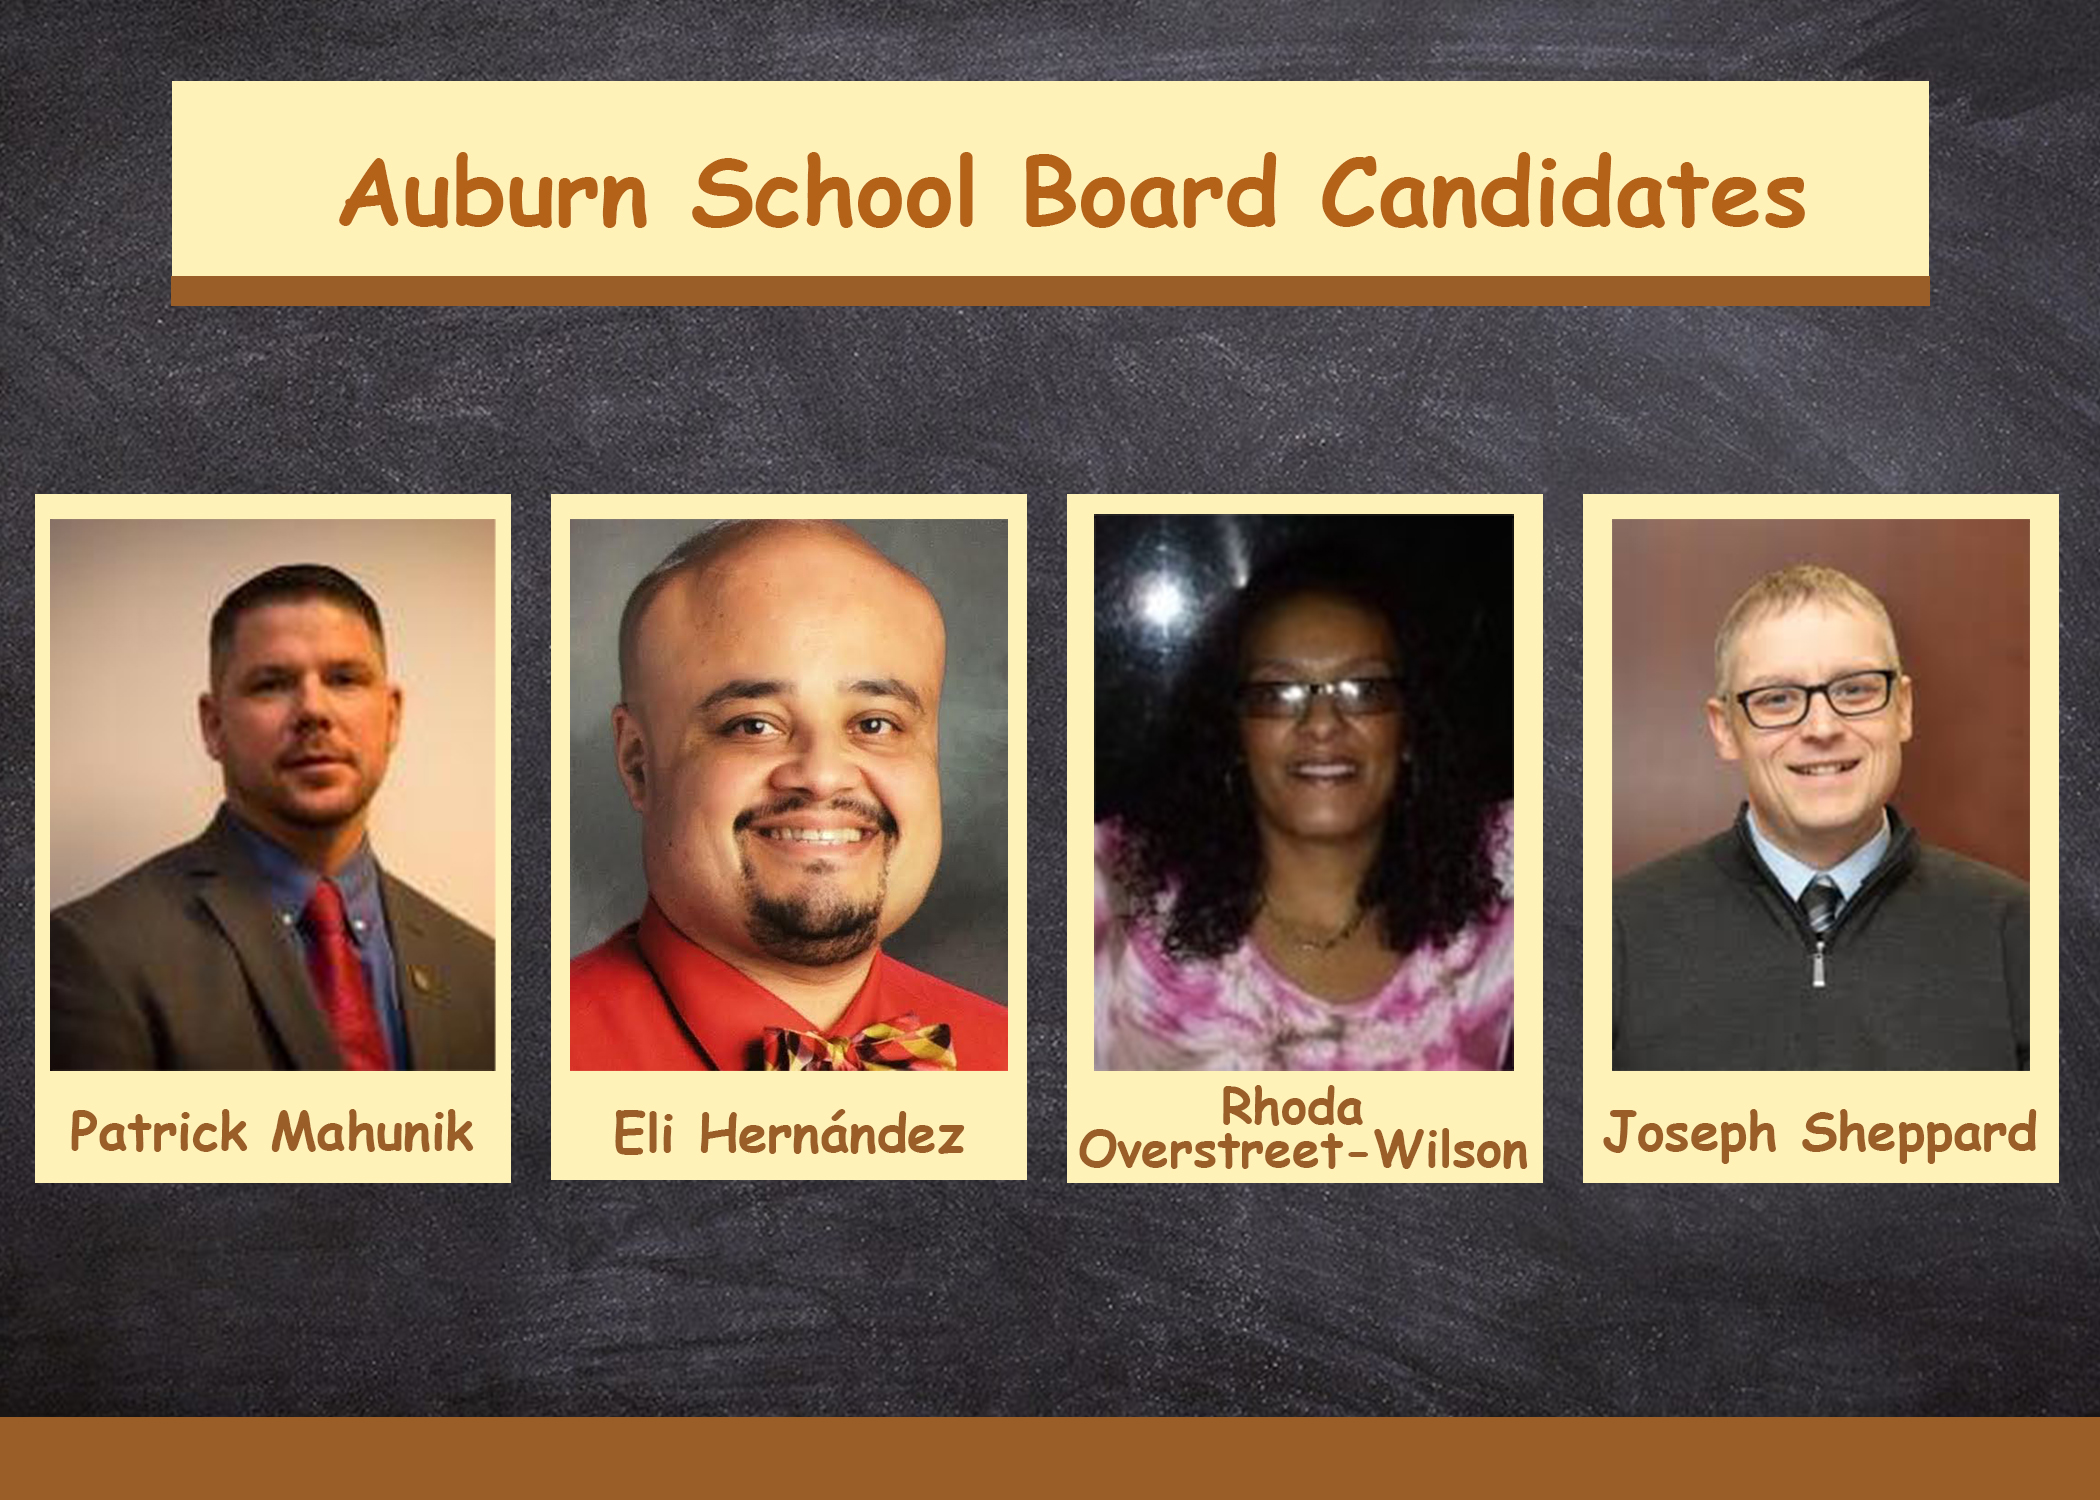 Q&A with school board candidates from the Auburn Enlarged City School District